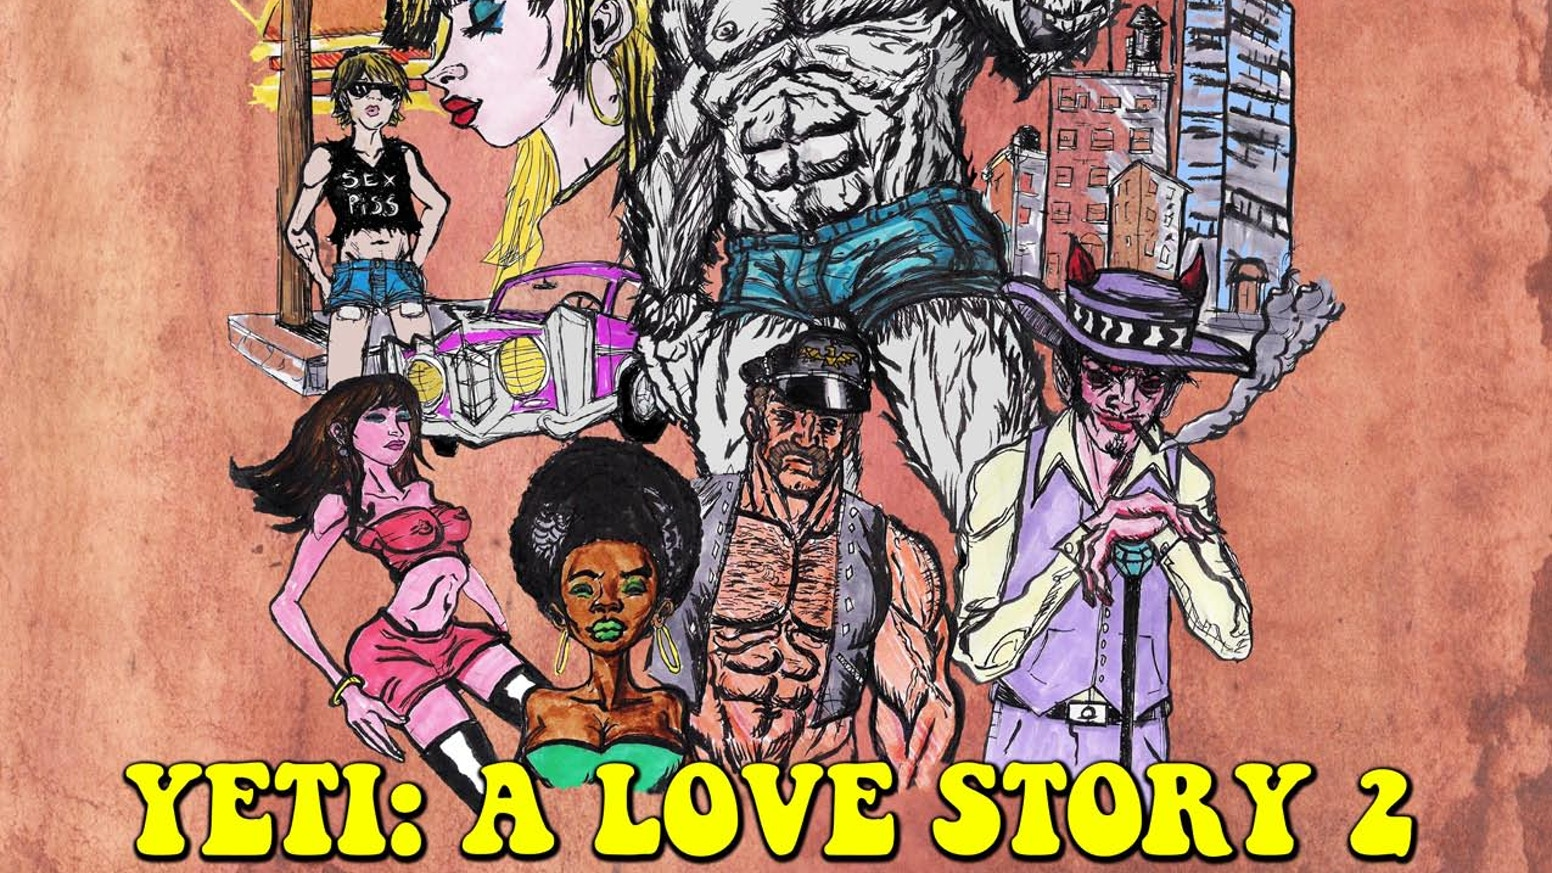 YETI: A LOVE STORY 2: LIFE ON THE STREETS by Jim Martin